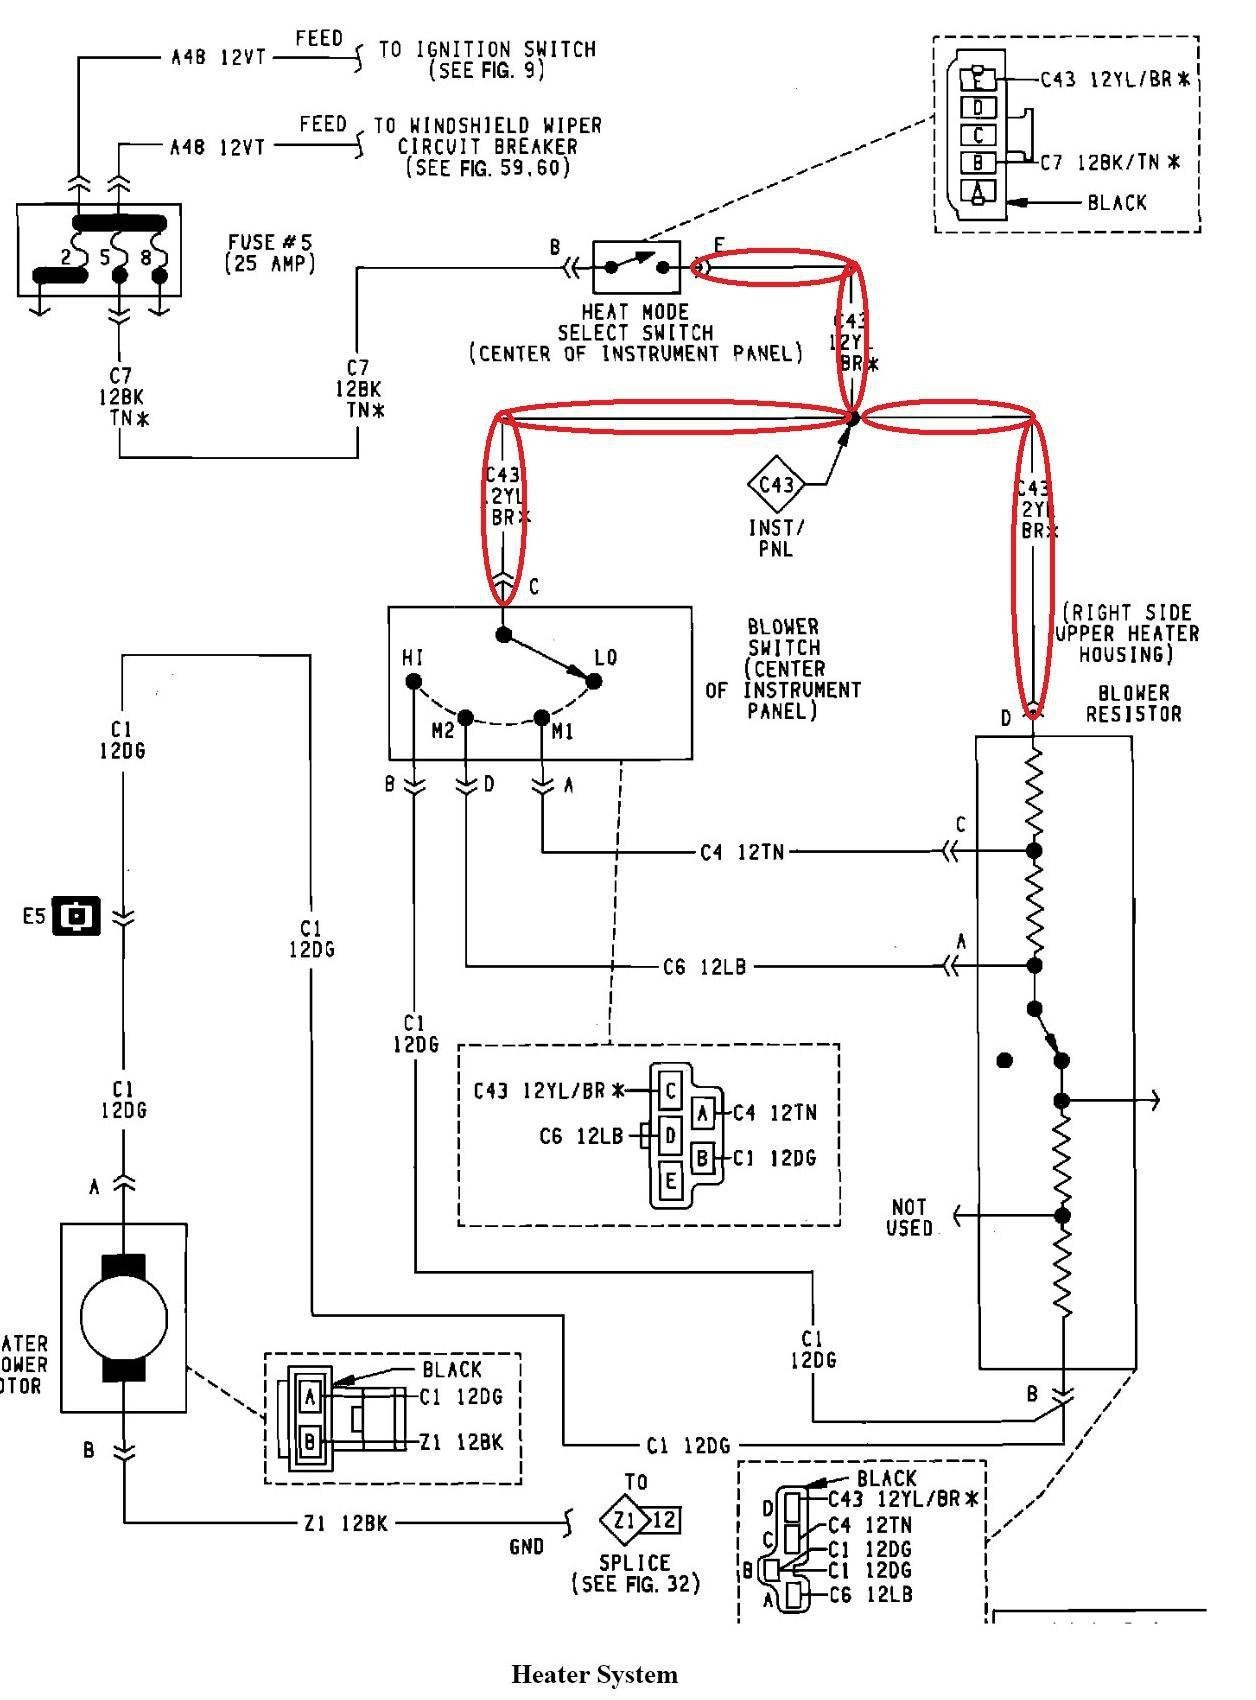 Ez Go Golf Cart Wiring Diagram 36 Volt - Schematic Diagram Data  Post Solenoid Wiring Diagram Ezgo Gas on ezgo gas workhorse wiring-diagram, 2003 f150 radio wiring diagram, omc ignition switch wiring diagram, club car forward reverse wiring diagram, ez go txt textron diagram, 1996 ezgo txt battery diagram, golf cart wiring diagram, ez go wiring diagram, easy go wiring diagram,